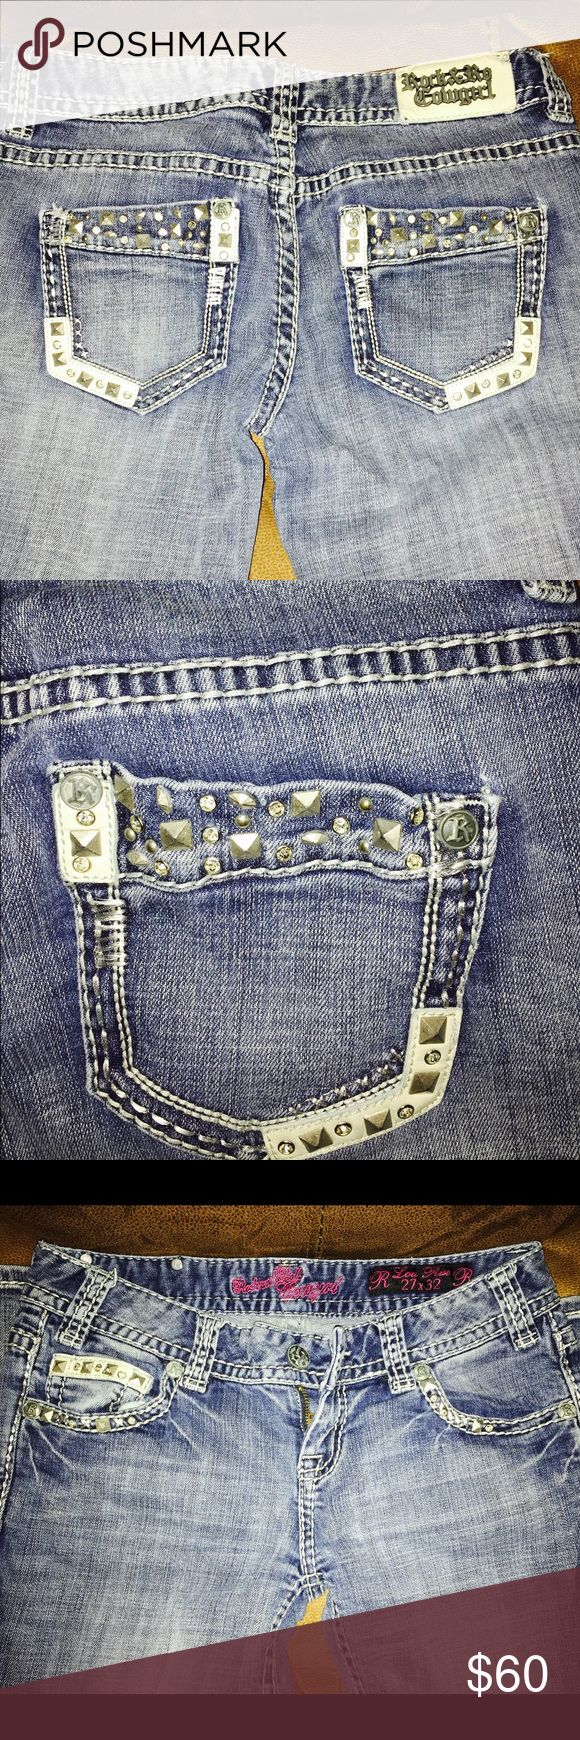 "Rock&Roll cowgirl jeans Rock&Roll cowgirl jeans size 27X32 in perfect conditions! Adorable jeans just don't fit me anymore. The only thing wrong with these is it's missing the ""LL"" at the end of ""Roll"" other then that they're aren't stained or torn from anywhere Rock & Roll Cowgirl Jeans Boot Cut"